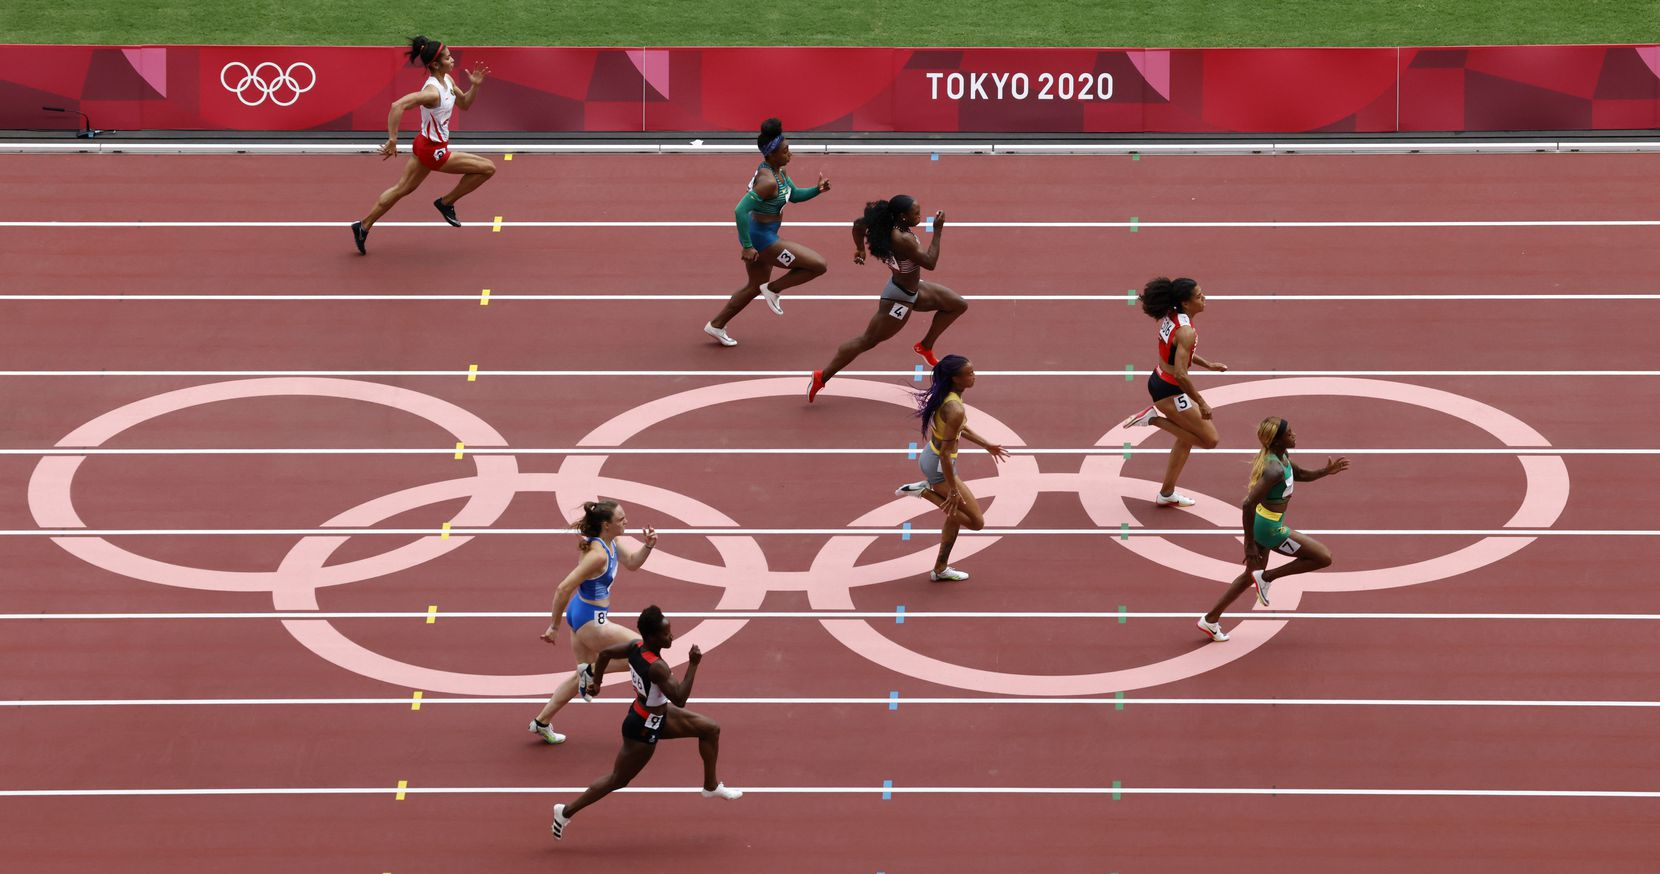 Jamaica's Elaine Thompson-Herah takes the lead in a women's 100 meter race during the postponed 2020 Tokyo Olympics at Olympic Stadium, on Friday, July 30, 2021, in Tokyo, Japan. Thompson-Herah finished with a time of 10.82 seconds to advance to the next round. (Vernon Bryant/The Dallas Morning News)